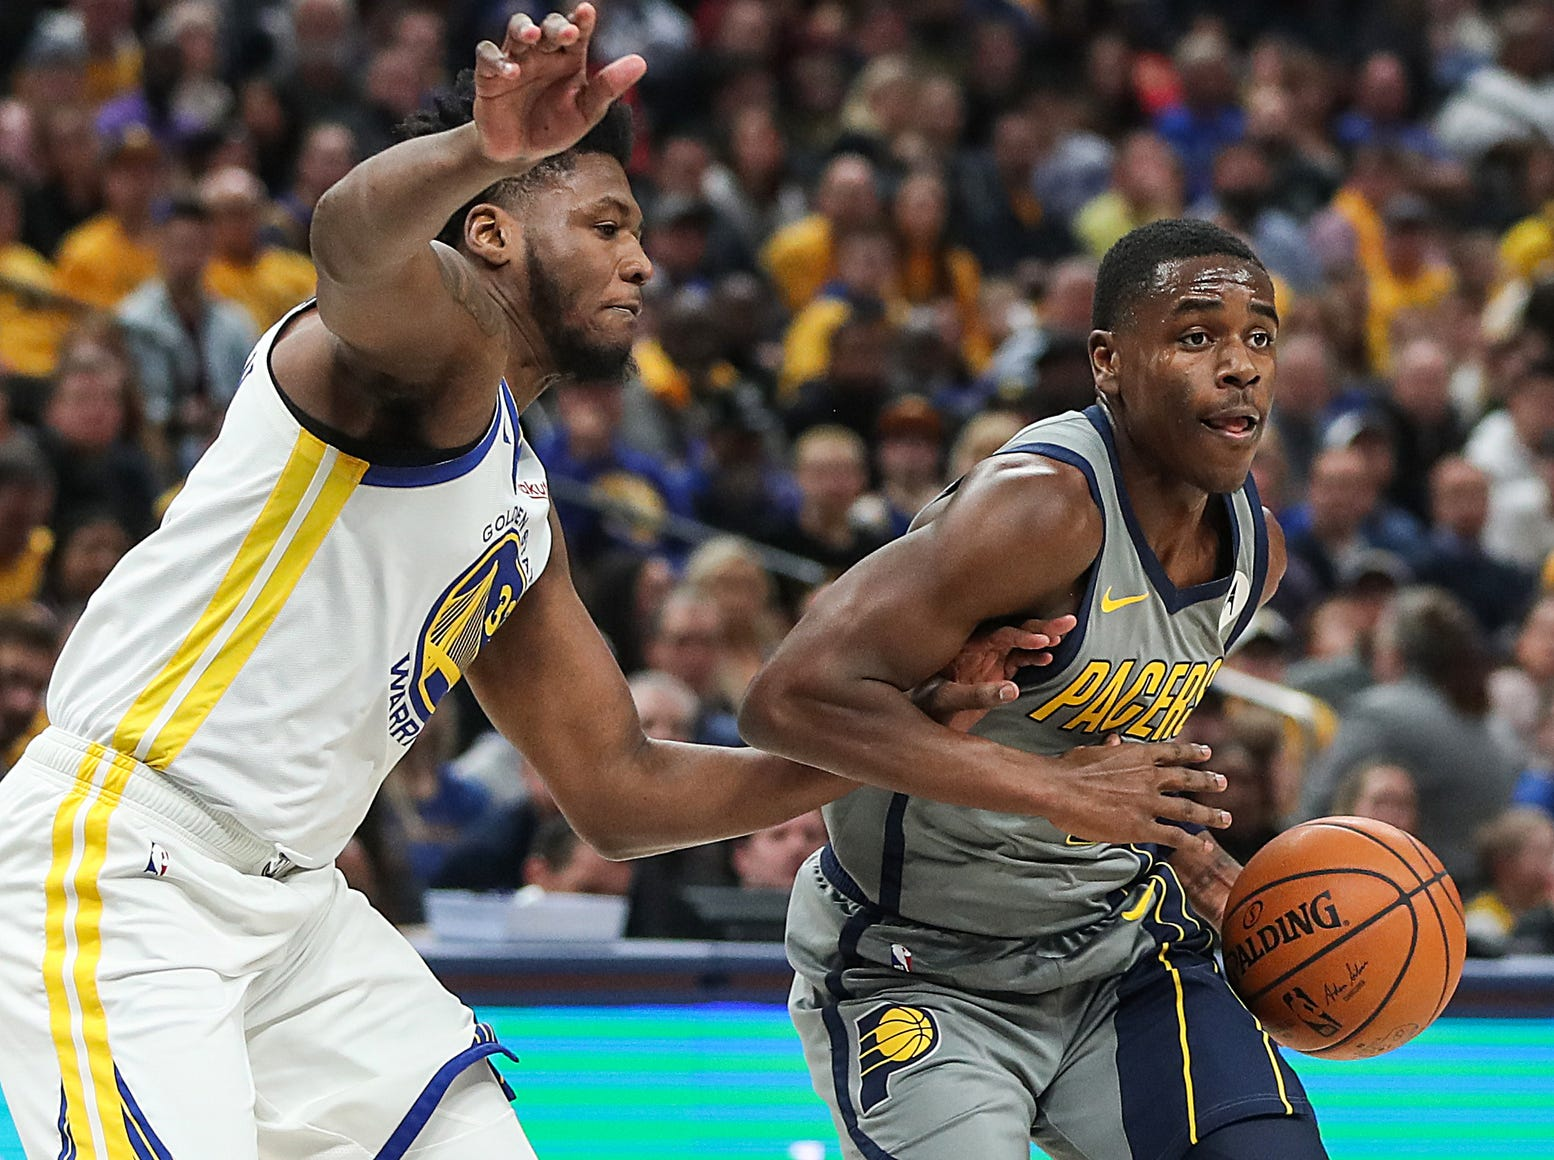 Doyel: With Victor Oladipo out, Pacers need to see what they have in Aaron Holiday, T.J. Leaf, Edmond Sumner